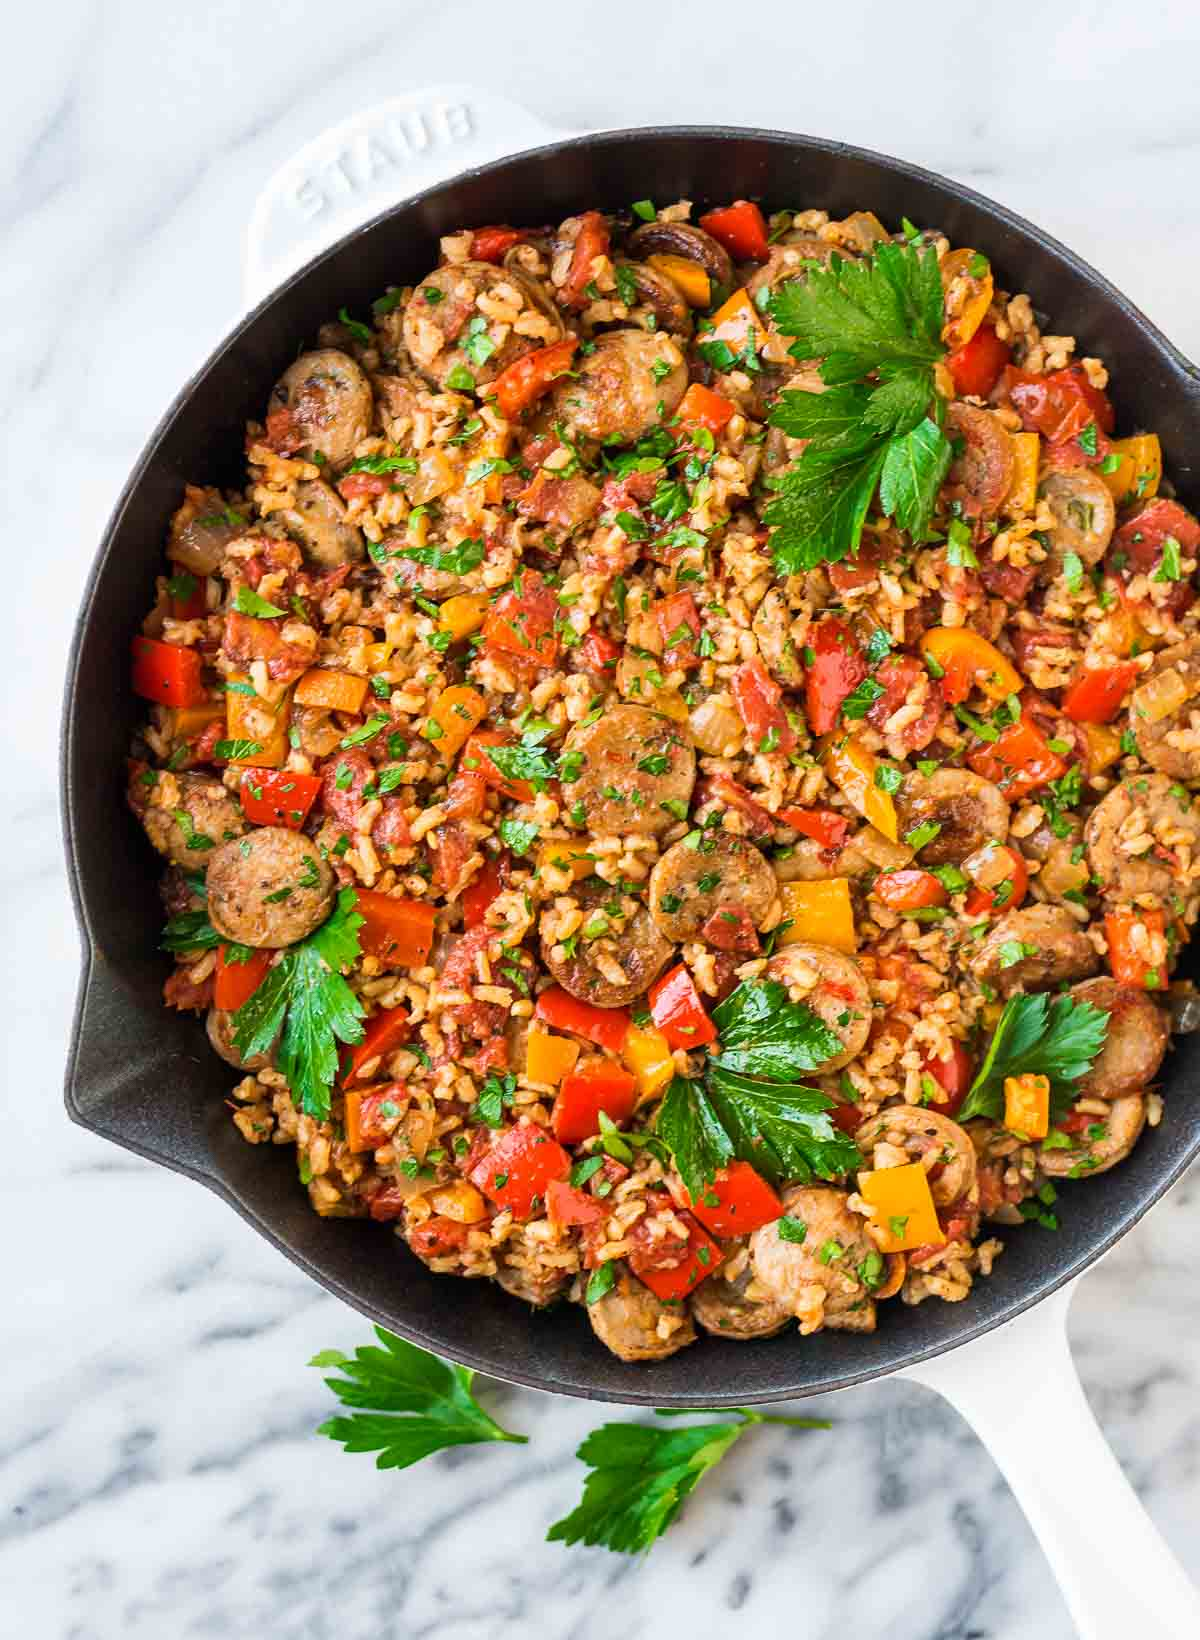 A pan filled with sausage, rice, bell peppers, and fresh herbs